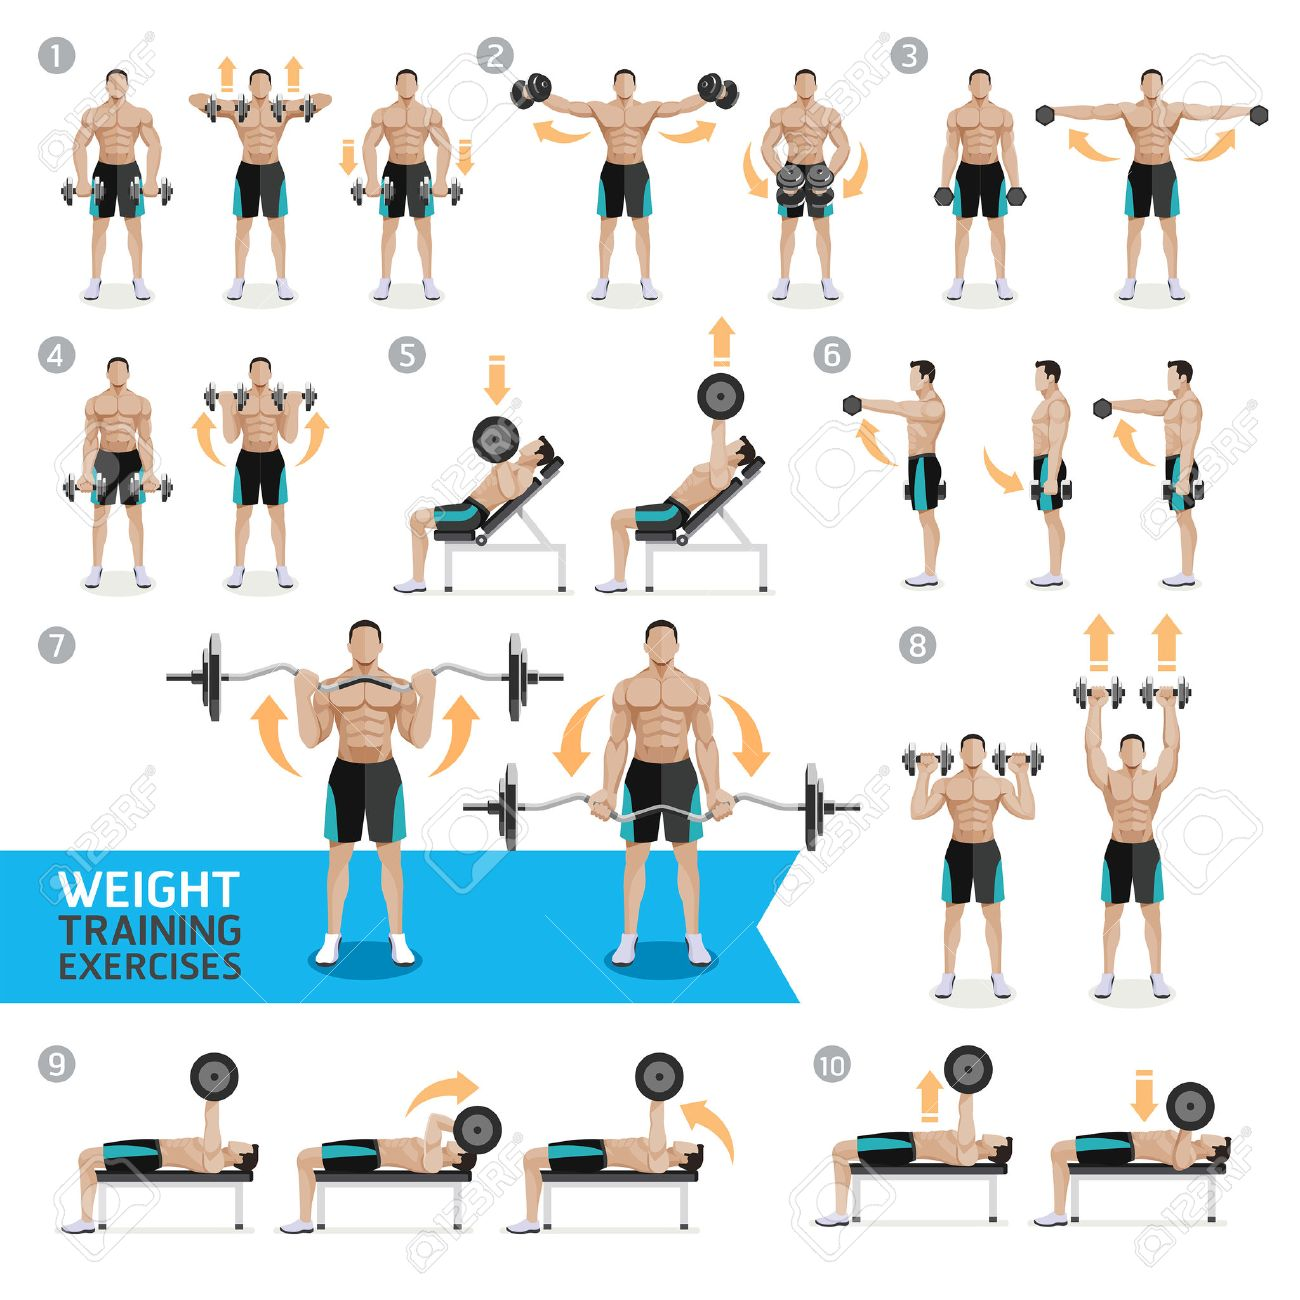 weight training exam Weight training is a great way to achieve strength and overall body fitness there are two main weight training for a specific sport involves strengthening specific muscle groups targeted for the.